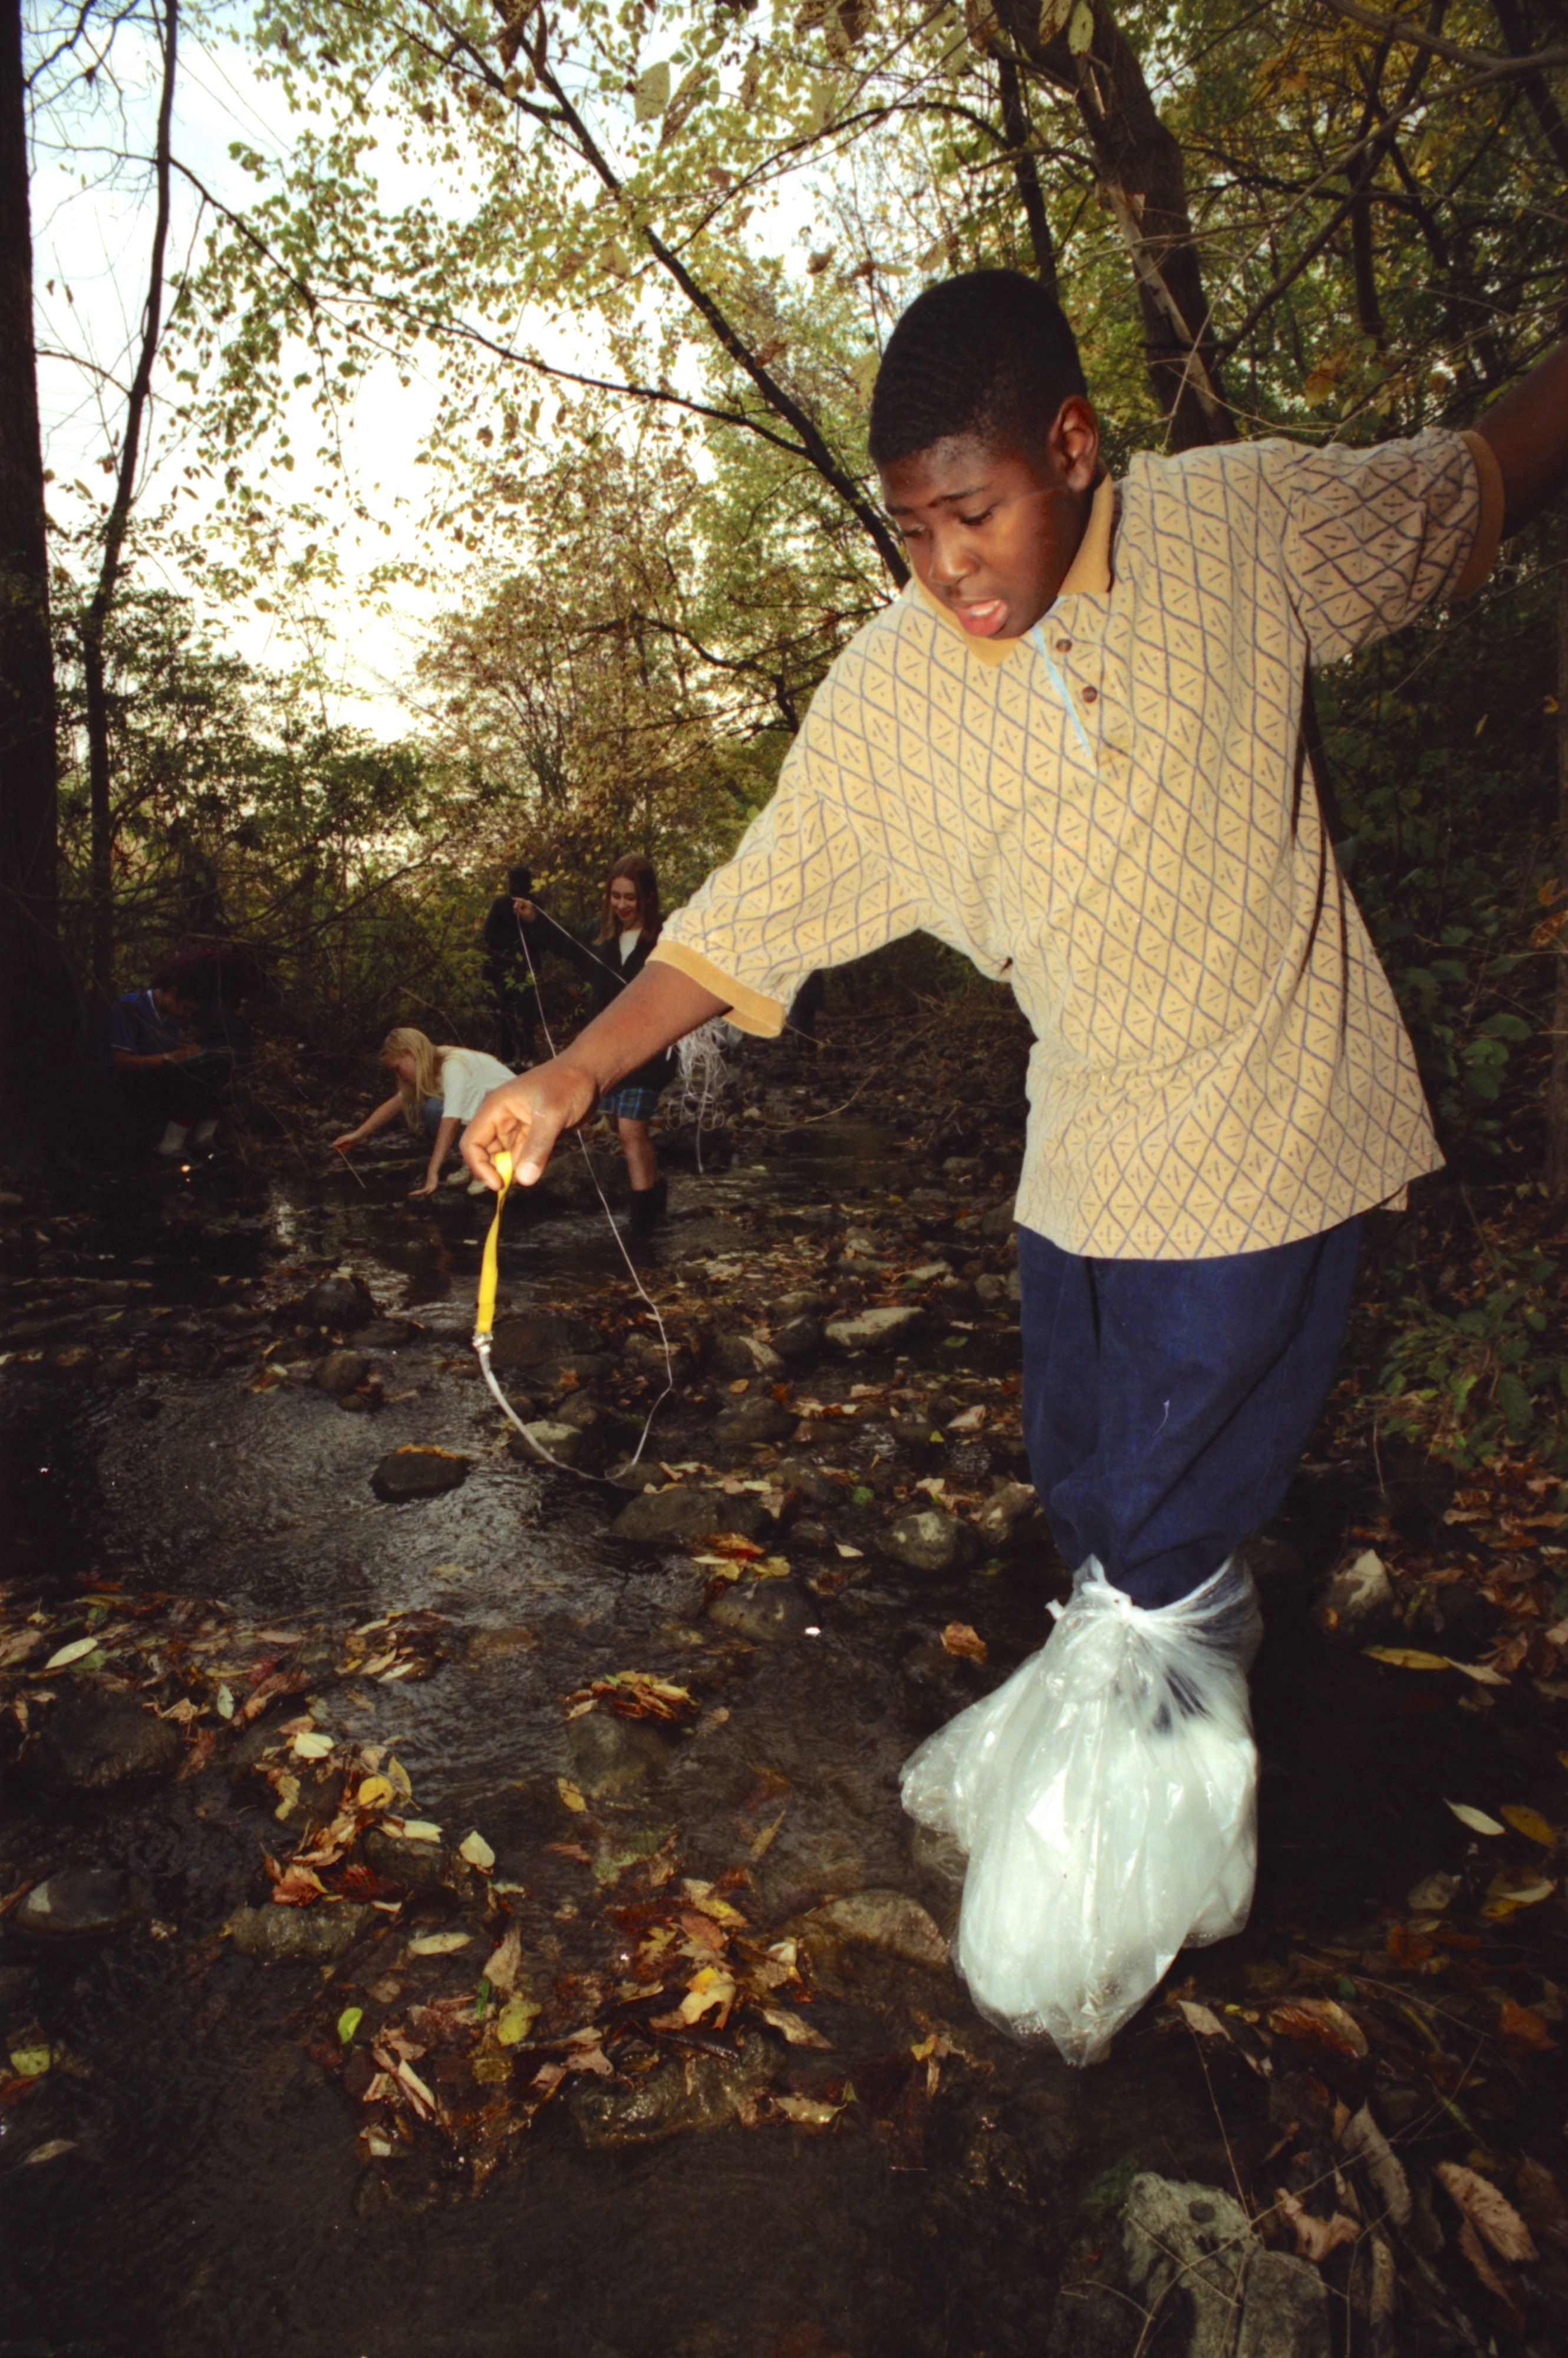 Community High School Student Harlen Turner Wades In Traver Creek, October 1995 image